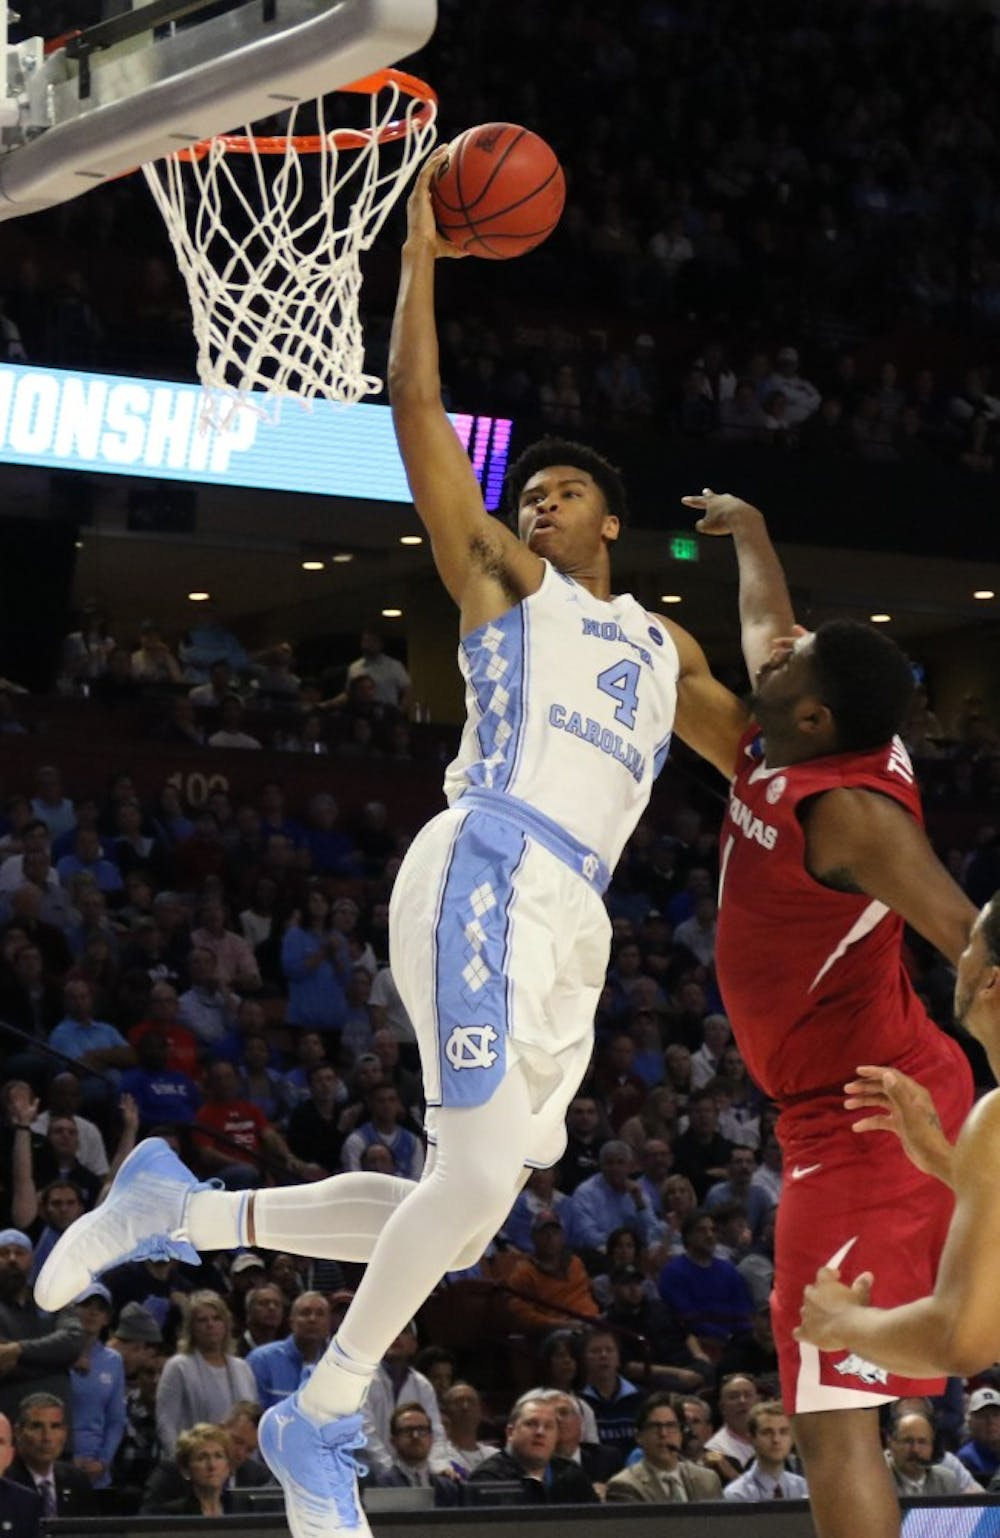 FILM REVIEW: The play call that saved the season for UNC men's basketball